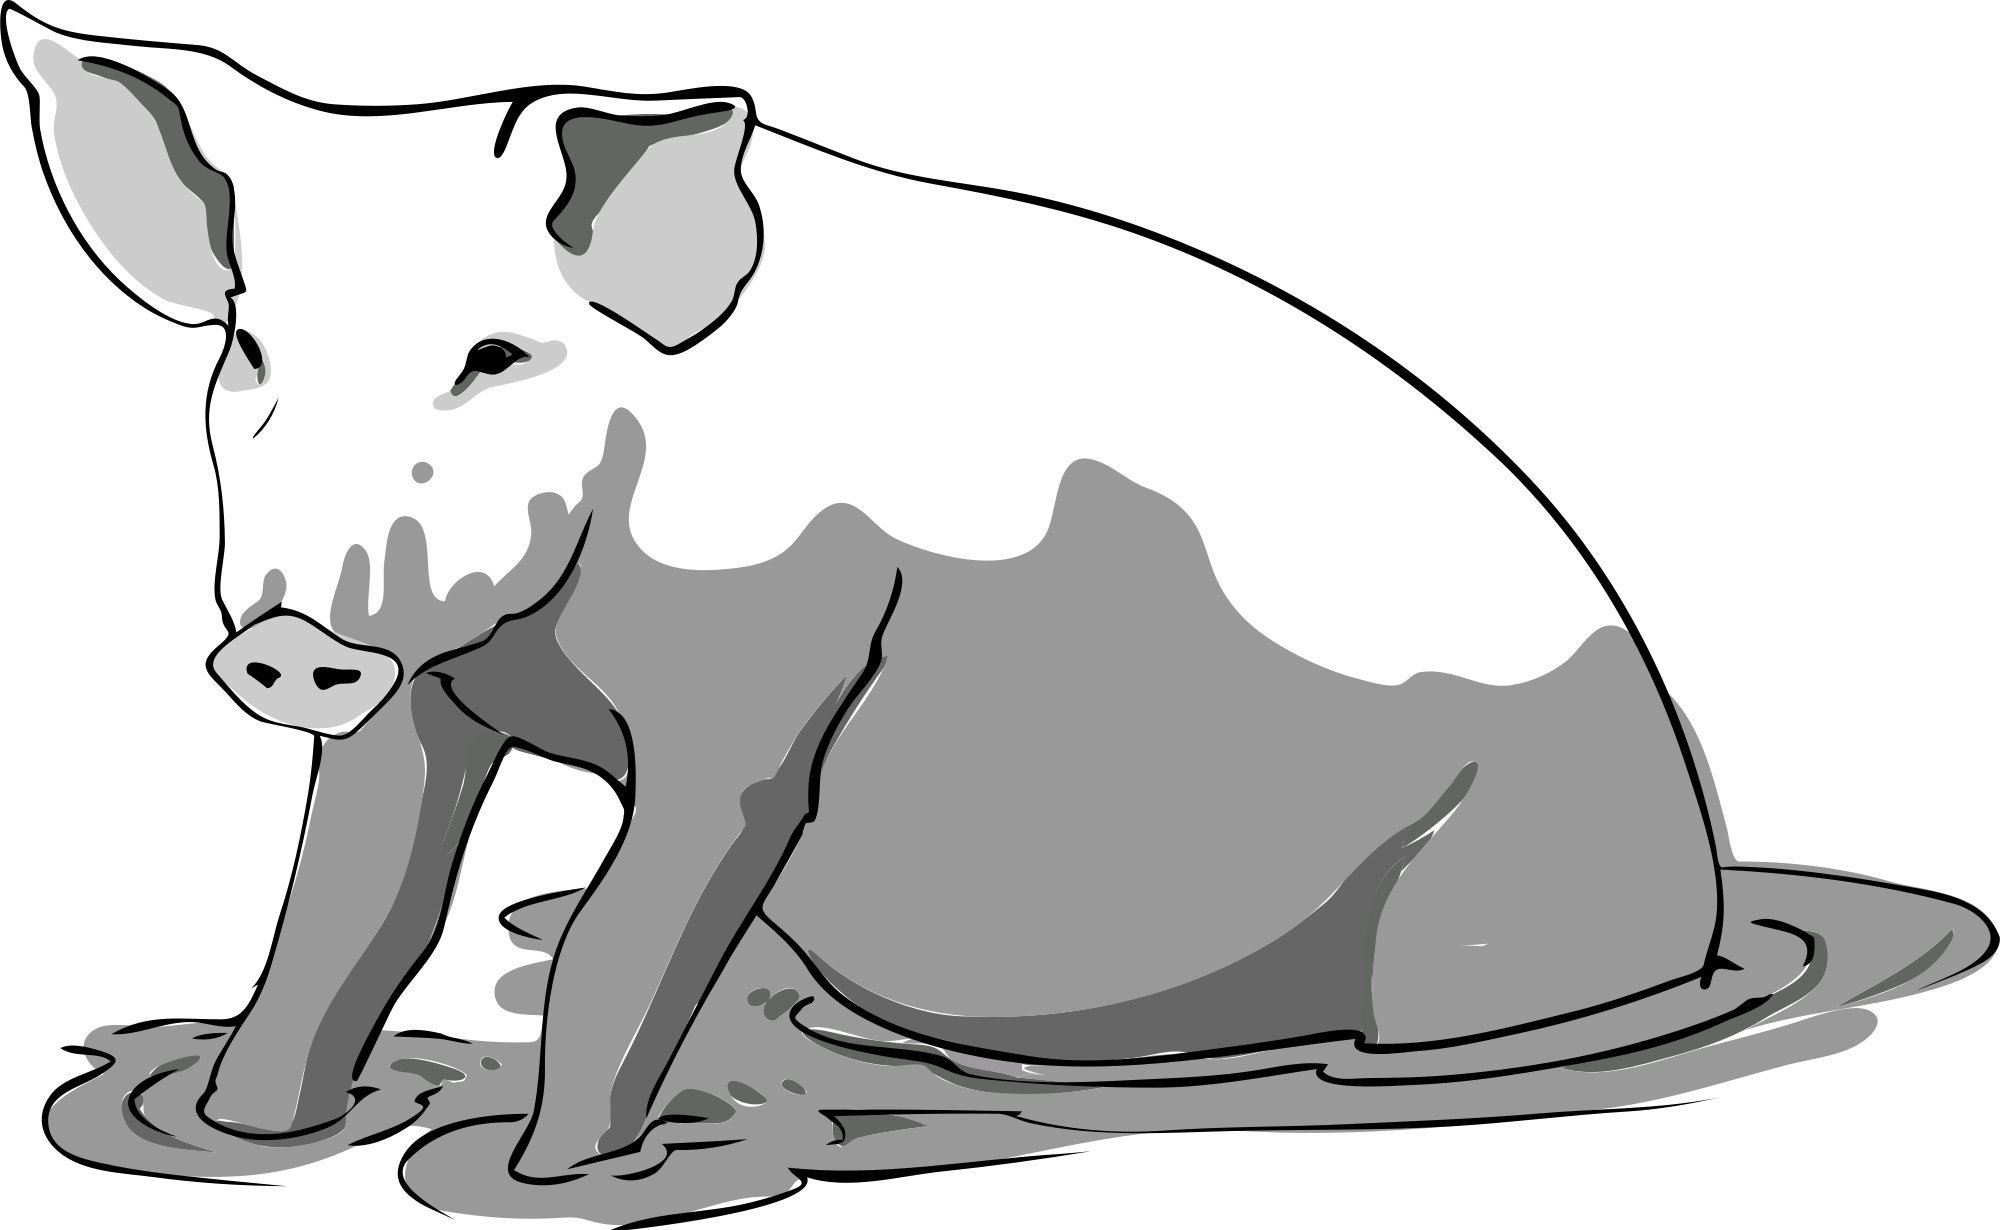 Mud clipart black and white #15